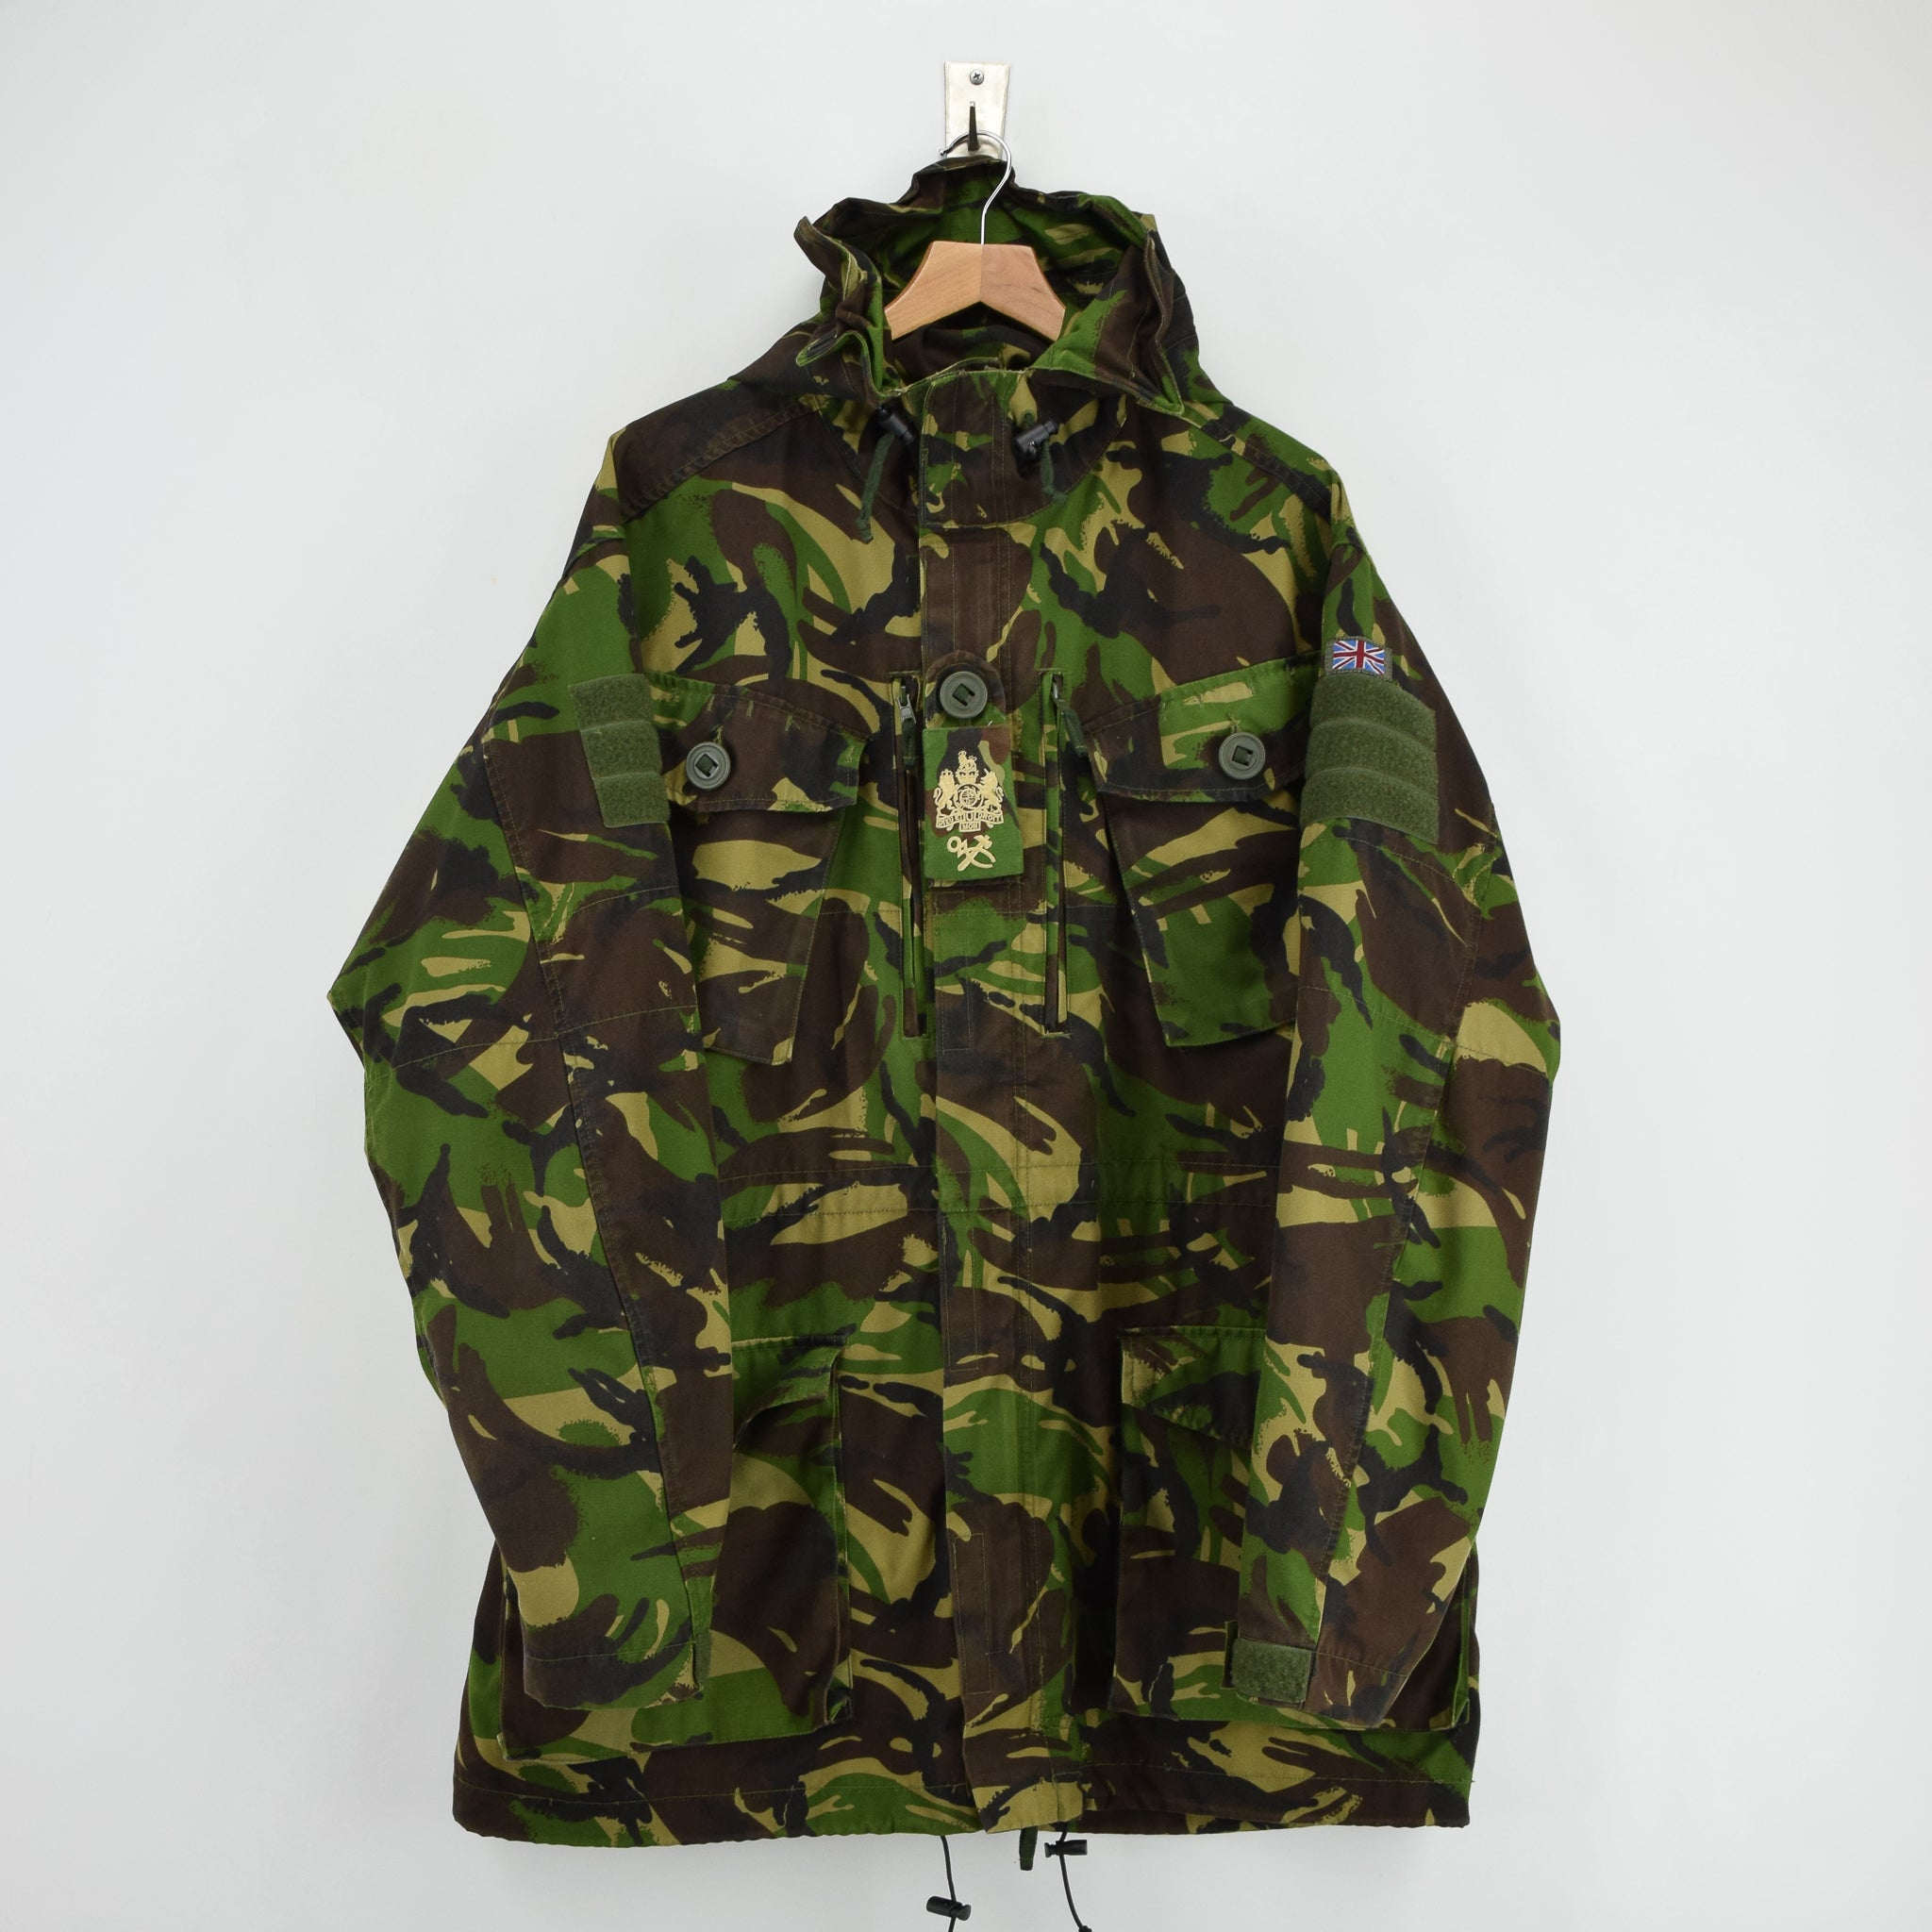 Vintage British Army Windproof Combat Smock Woodland Camo Field Jacket XL / XXL front